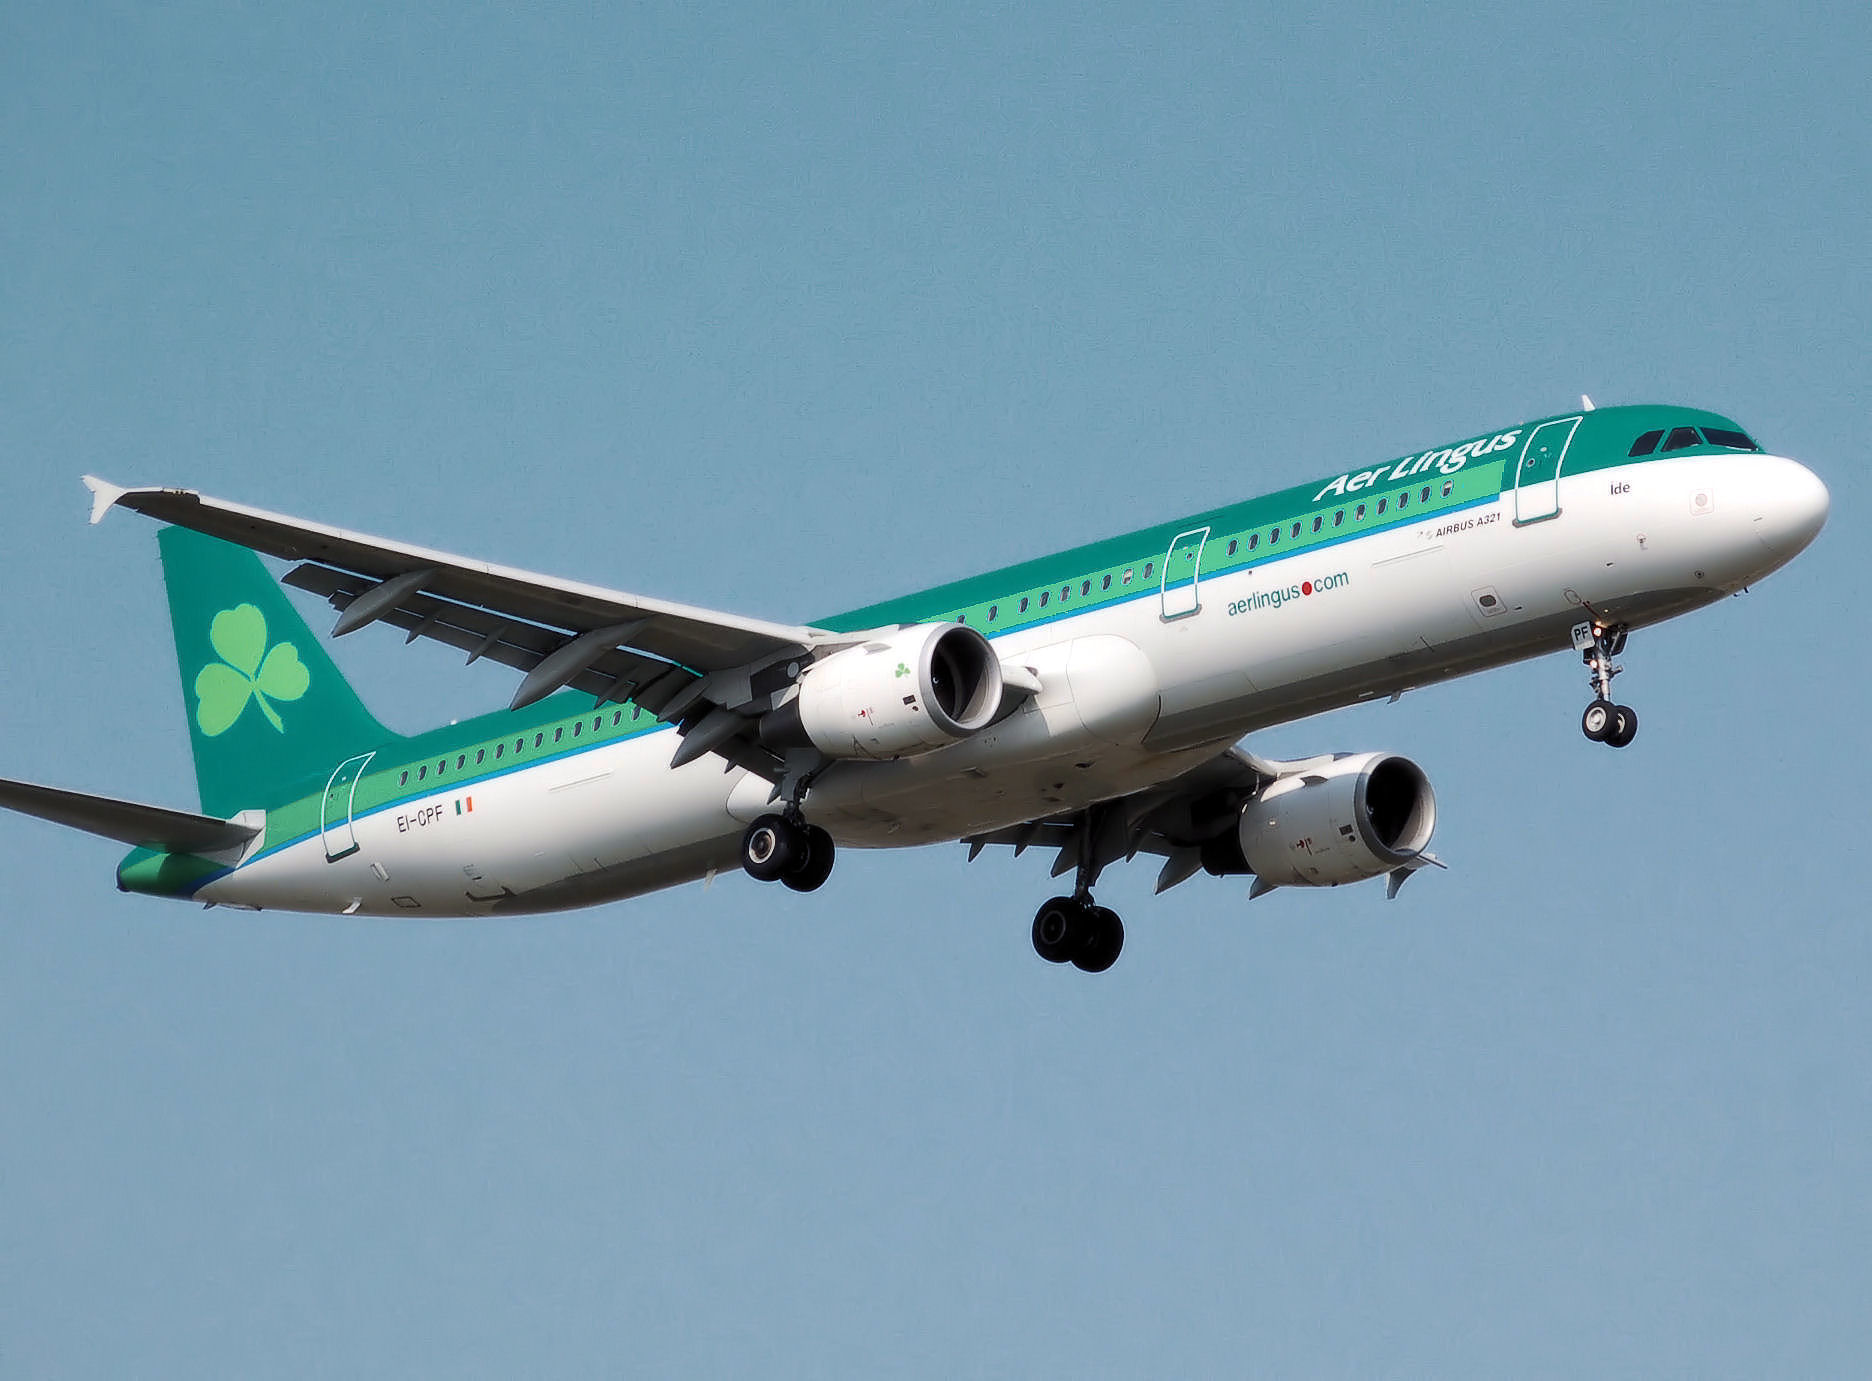 File:Aer.lingus.a321-200.ei-cpf.arp.jpg - Wikimedia Commons